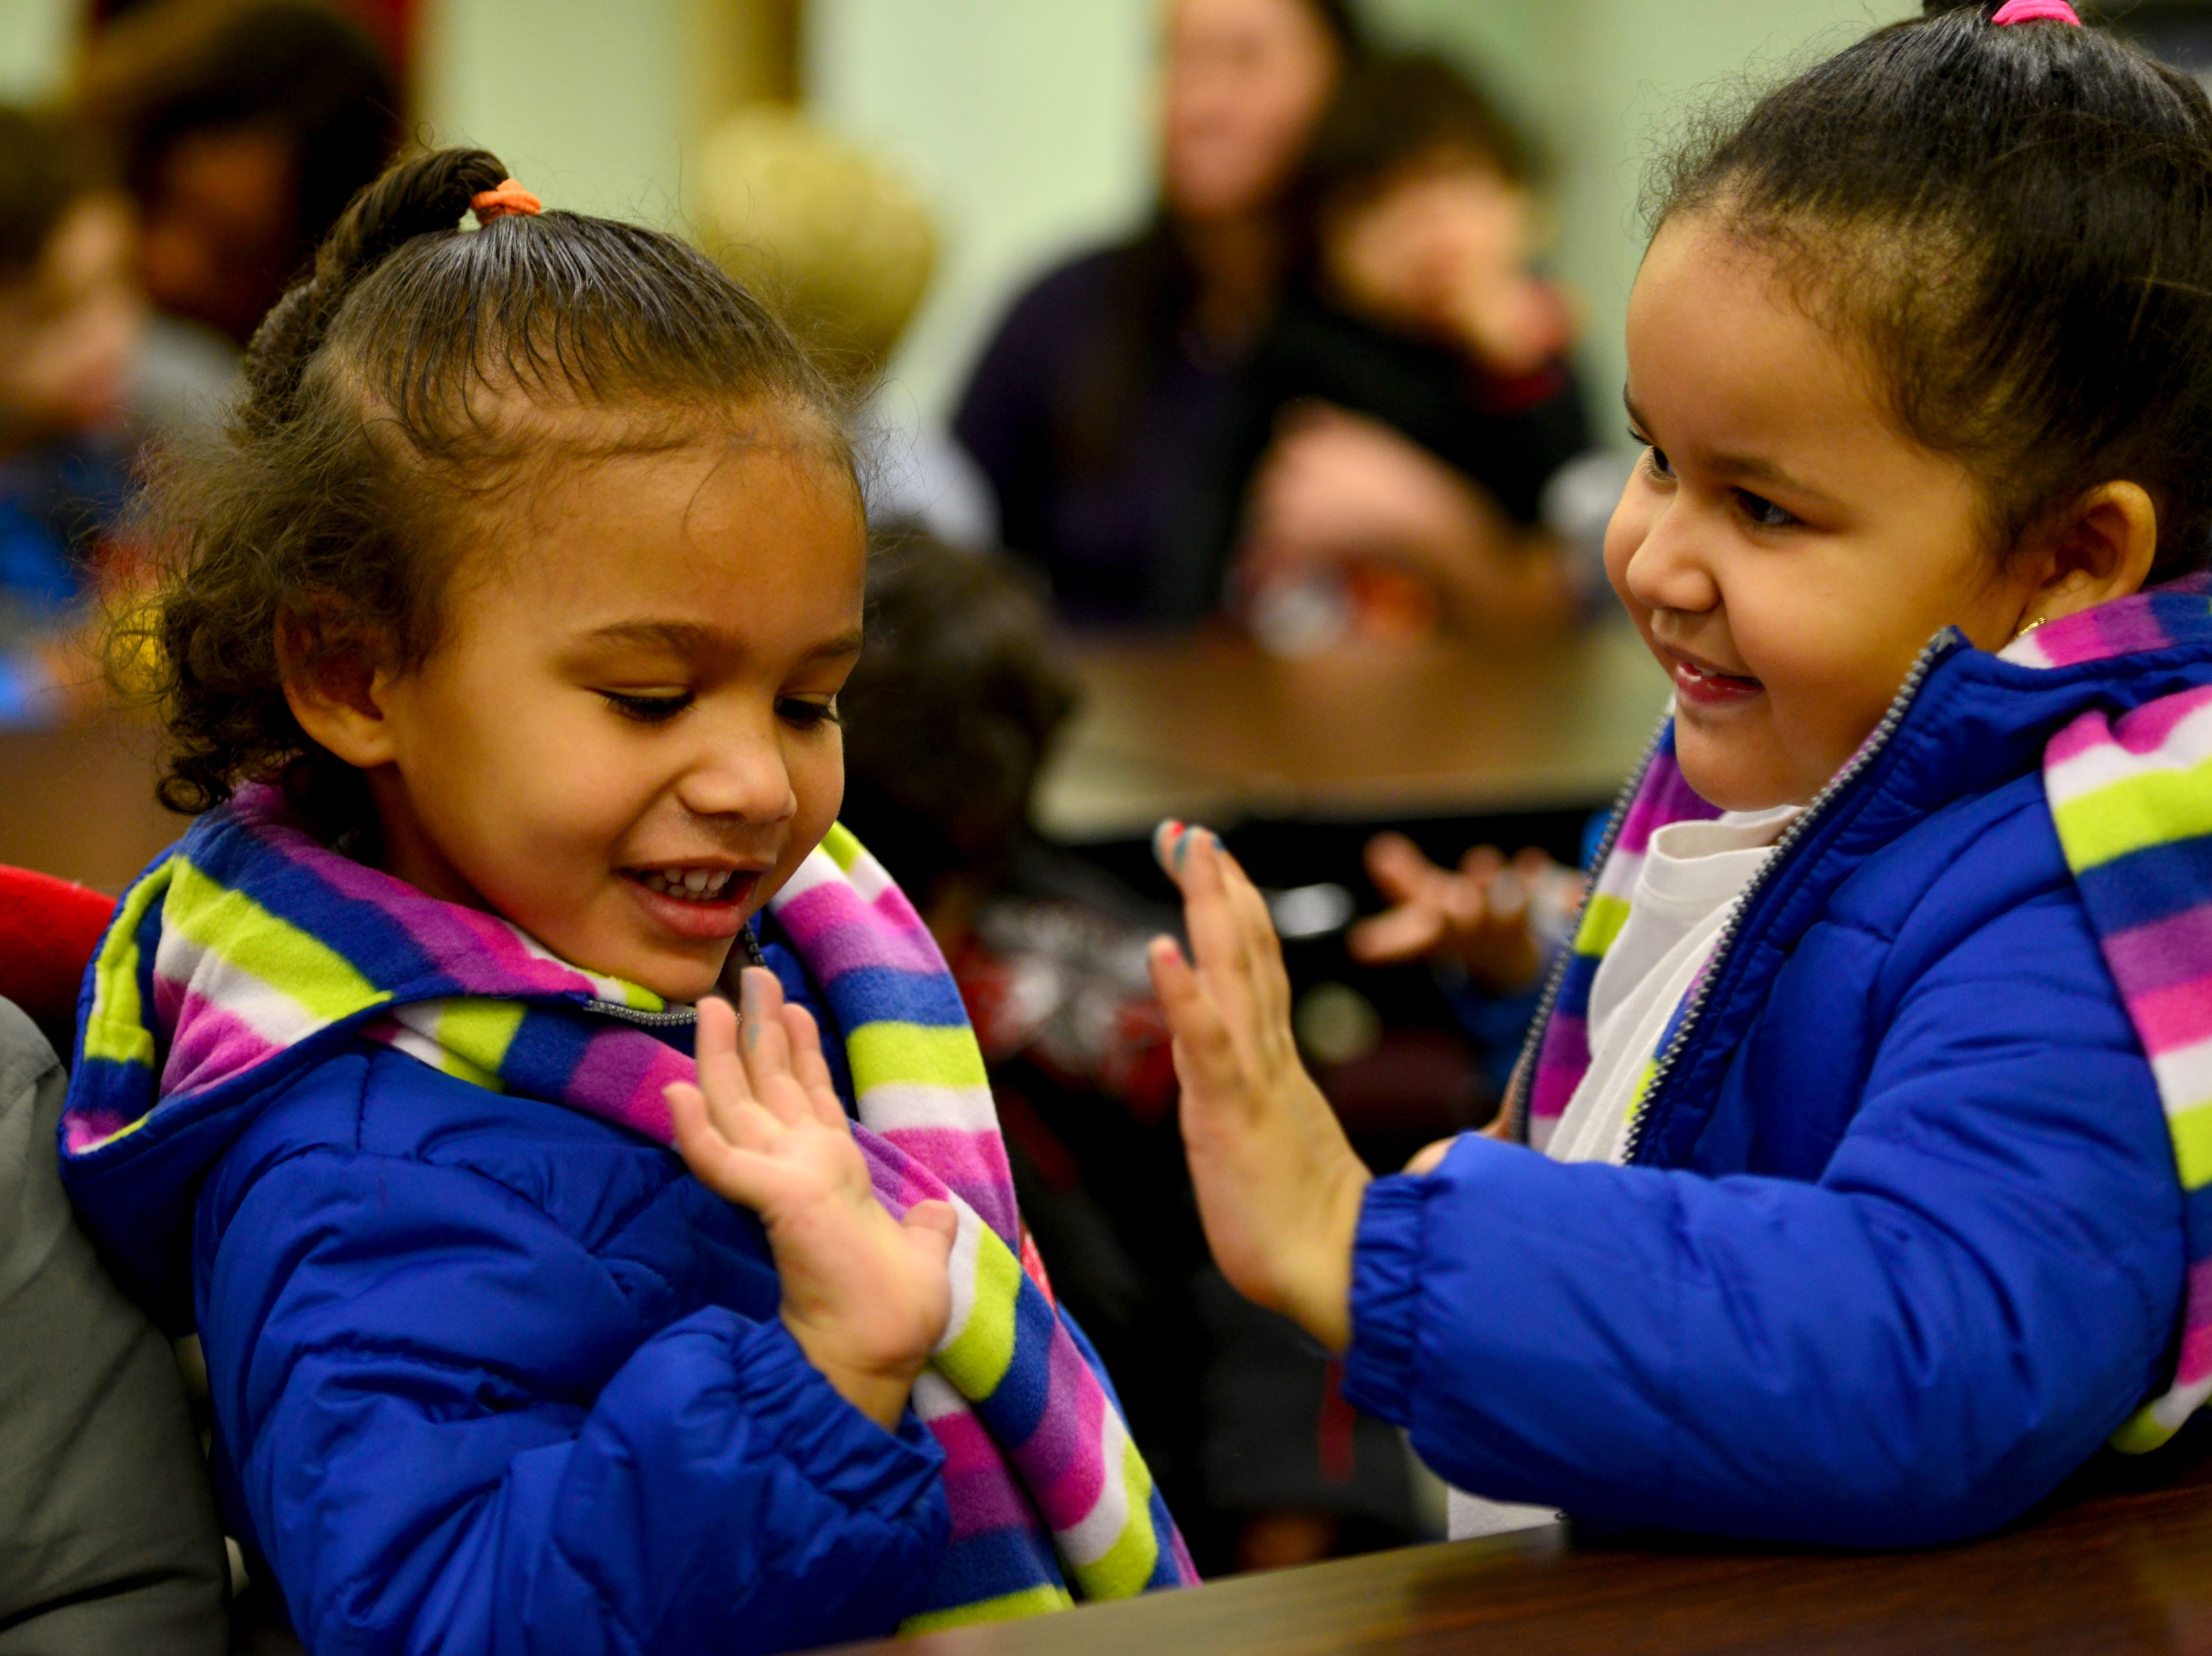 From left, Hailey Davis and Milani Nieves, PreK3 students, give each other a high five after putting on their new coats. The Paterson Rotary held their eighth annual Christmas Coat Drive in Paterson, on Monday morning December 17, 2018. The club donated coats to all the students at Edward W. Kilpatrick Elementary School. The Rotary Club raised funds from its members and the community to buy 380 coats for the students.